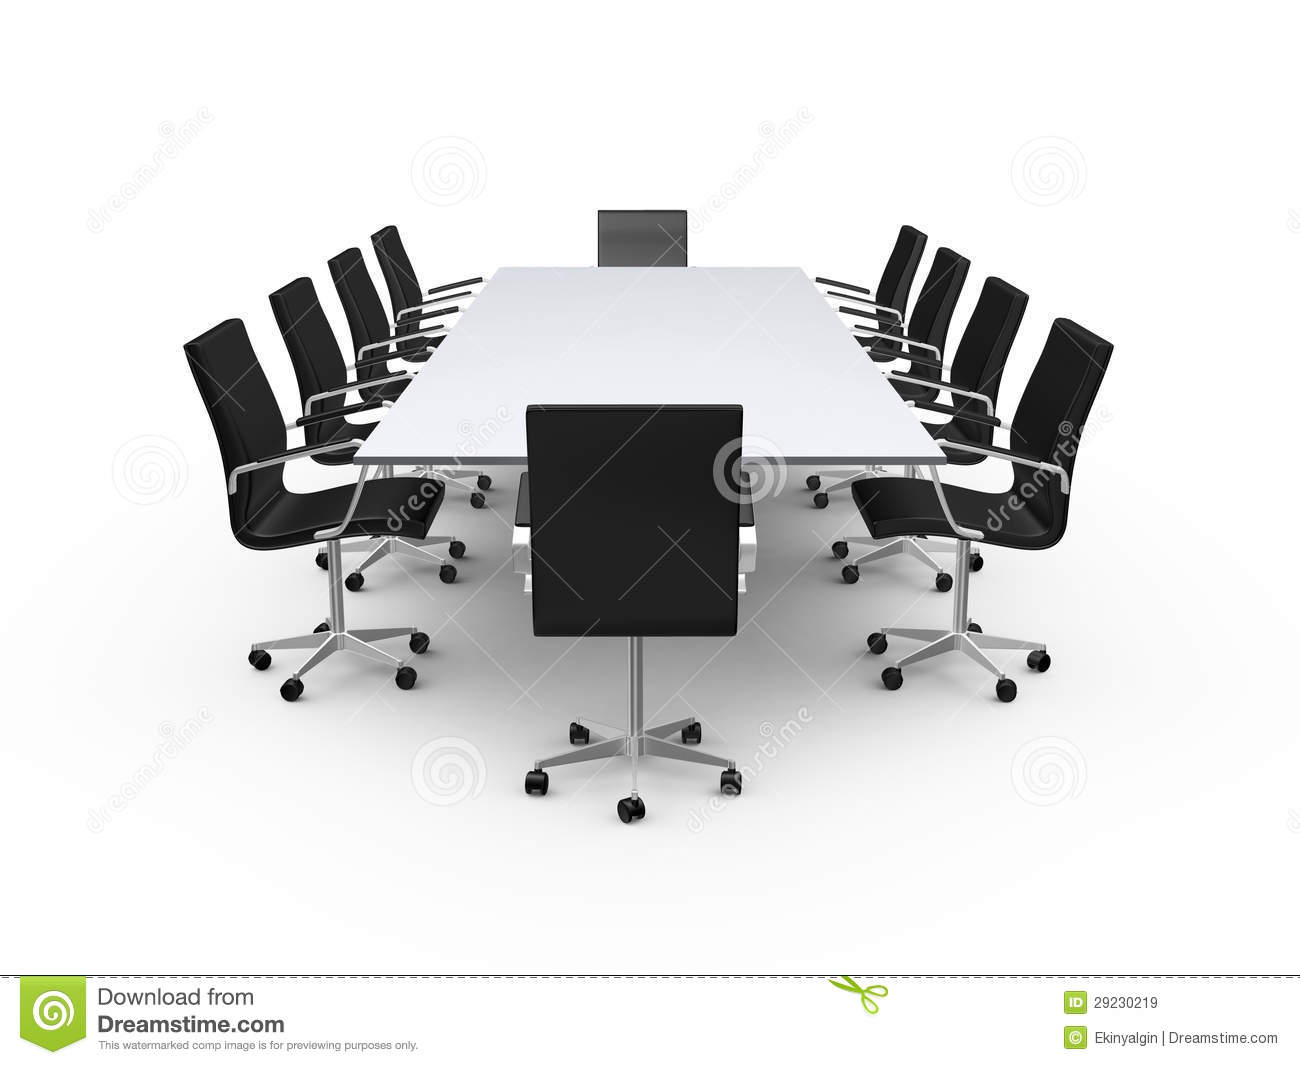 Table and chair top view - Conference Table And Office Chairs Royalty Free Stock